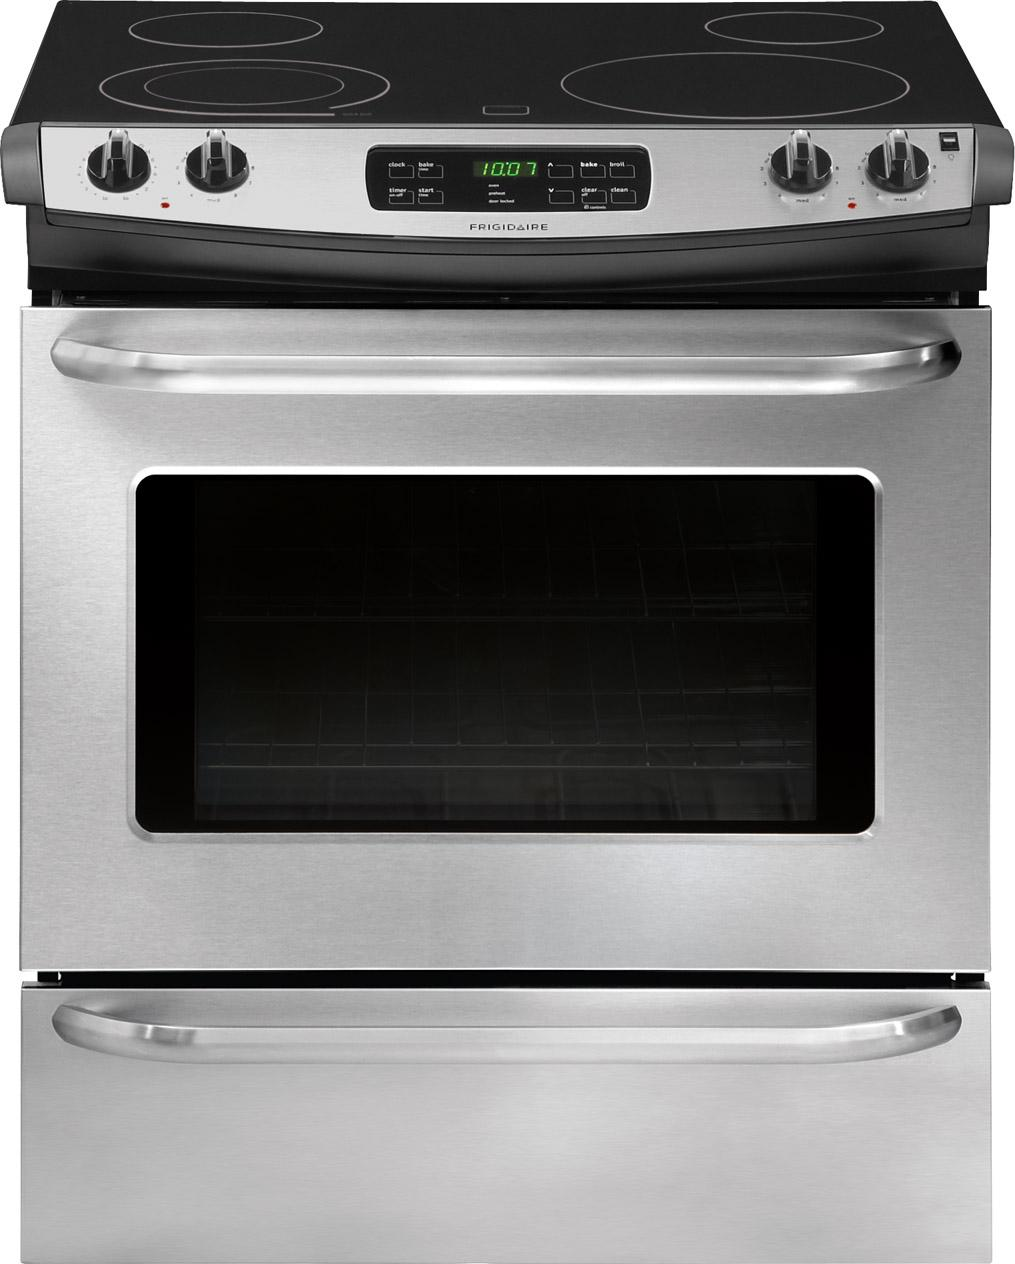 "Frigidaire Electric Range 30"" Slide-In Electric Range - Item Number: FFES3025PS"